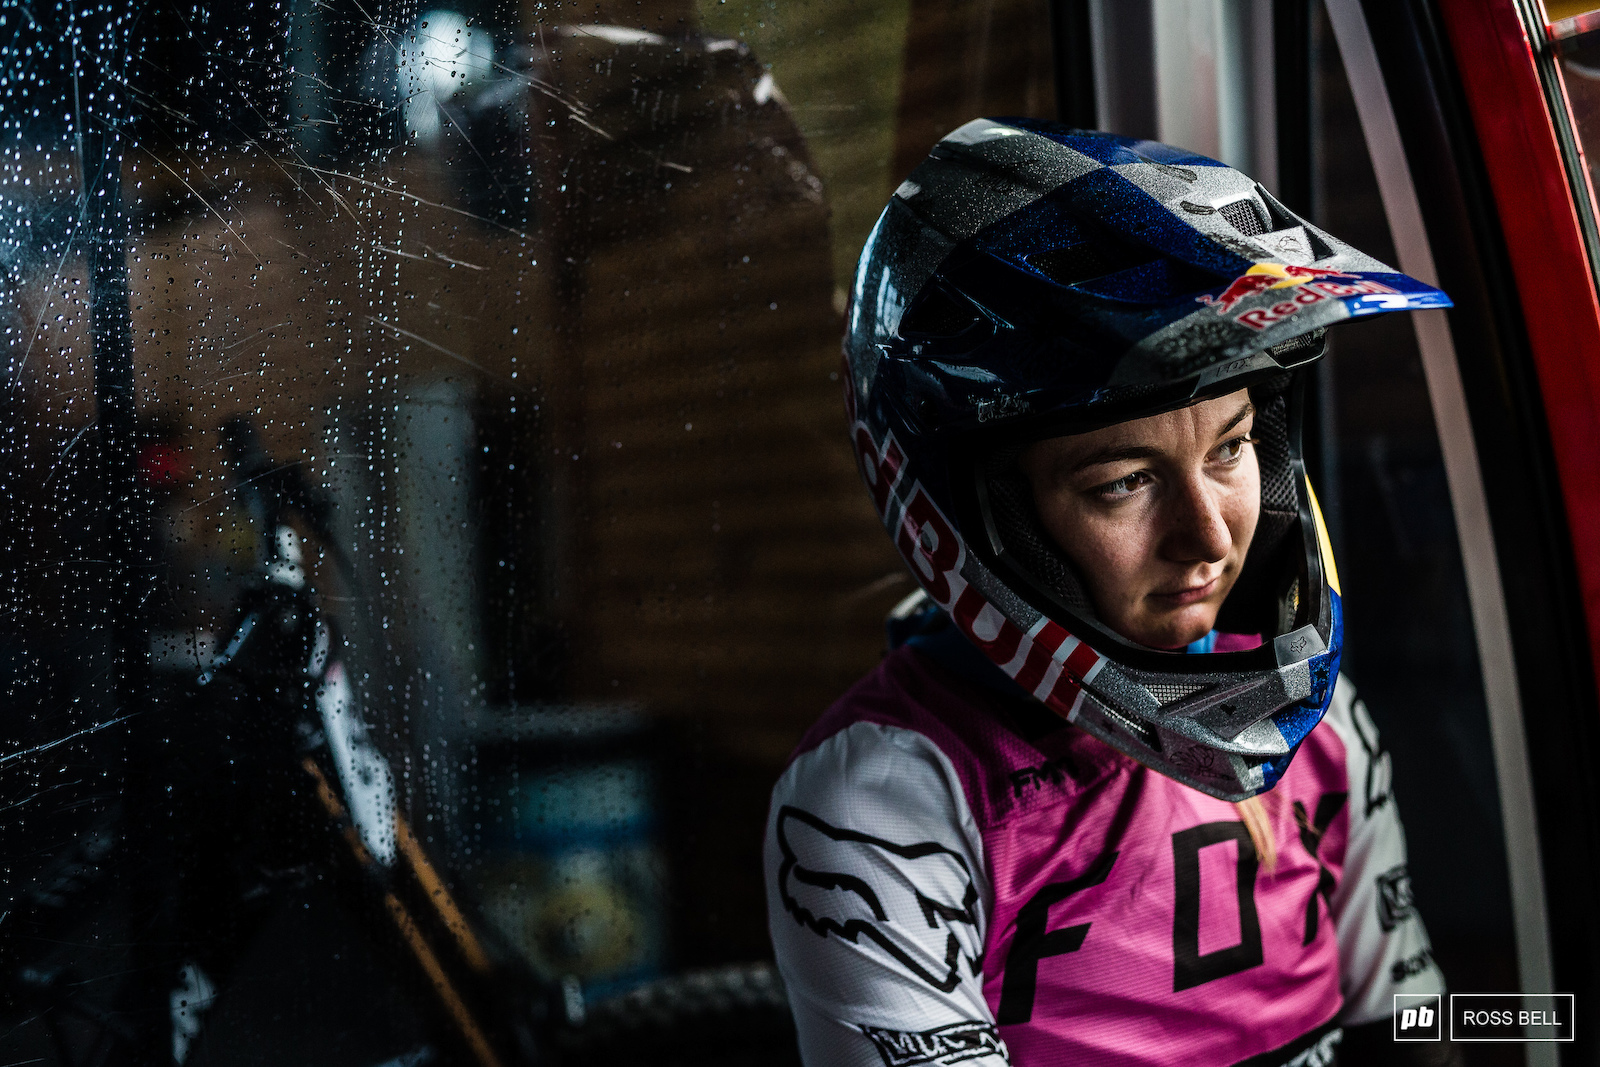 Tahnee Seagrave is hot on the heels of Rachel Atherton in the overall and will want to seize the momentum going into the final round.